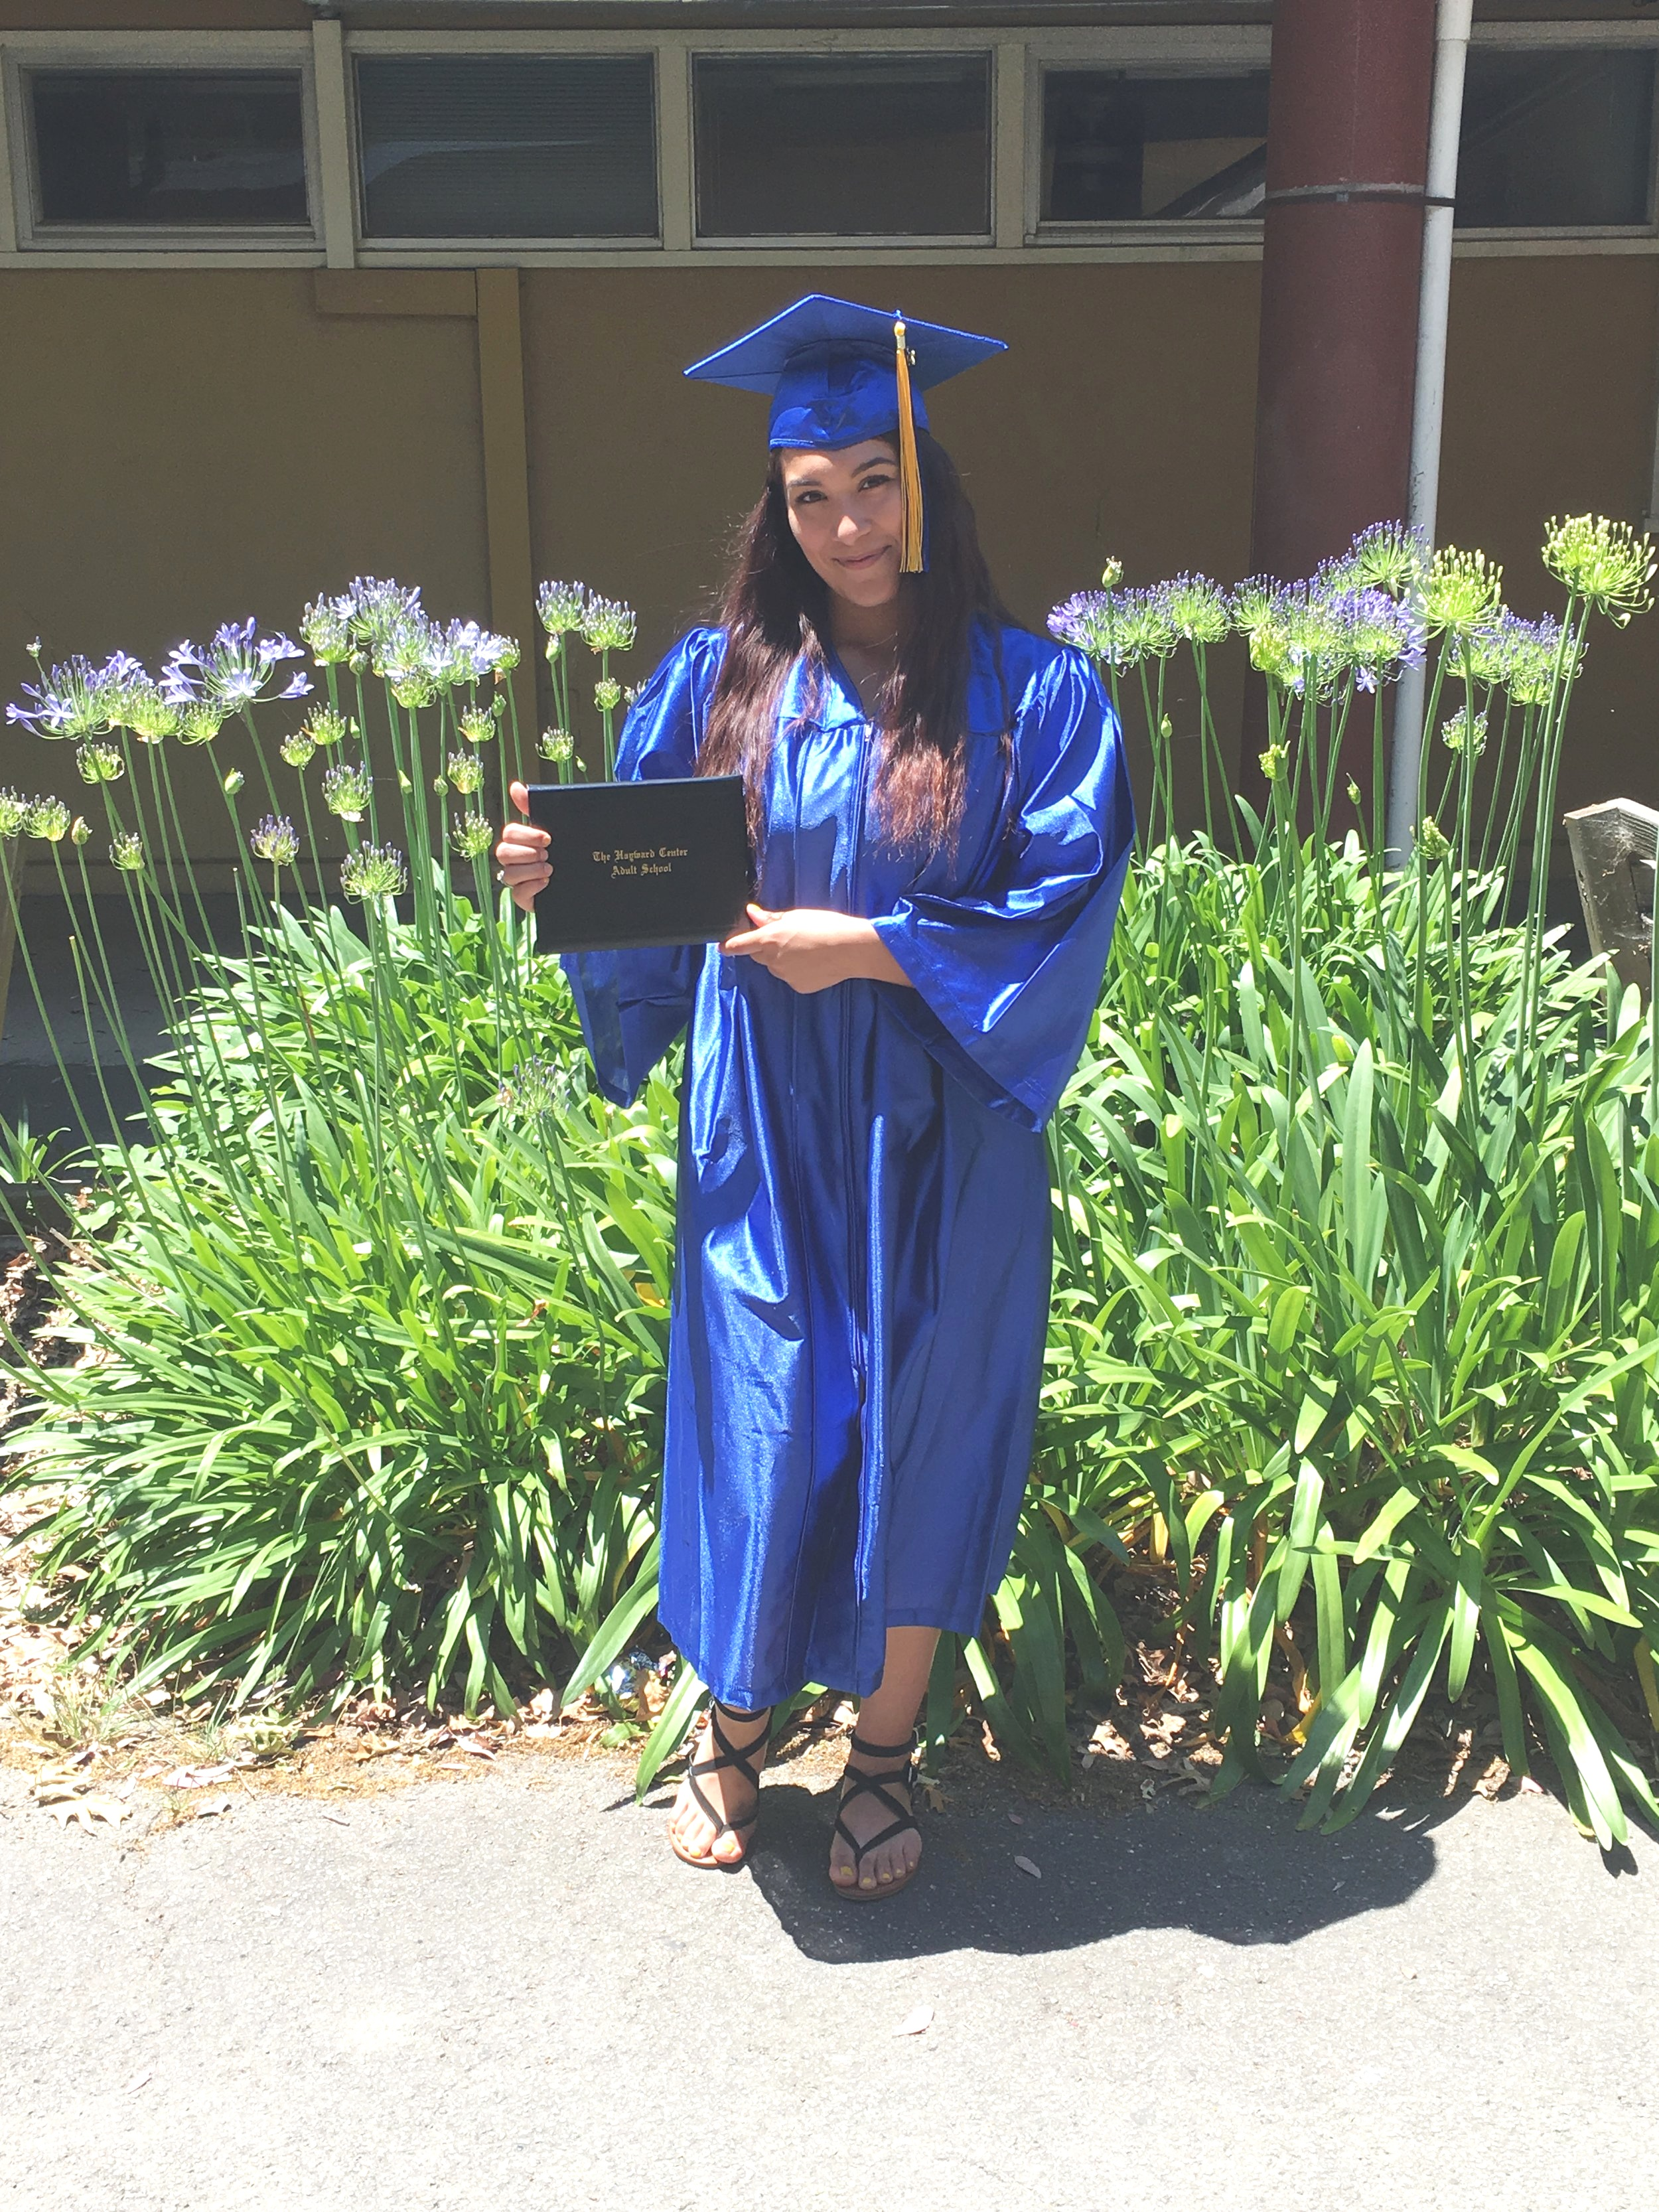 Tania G. - Congratulations Tania Gonzalez! Tania joined Youth Enrichment Services in April 2019 with the goal of attaining her H.S Diploma. Because of her great dedication and self motivation Tania successfully attained her H.S Diploma in May 2019. Now, Tania has enrolled into Chabot Community College and will be pursuing a degree in Business. You are awesome Tania! I know that you will be accomplishing great things in the future! Keep persevering!